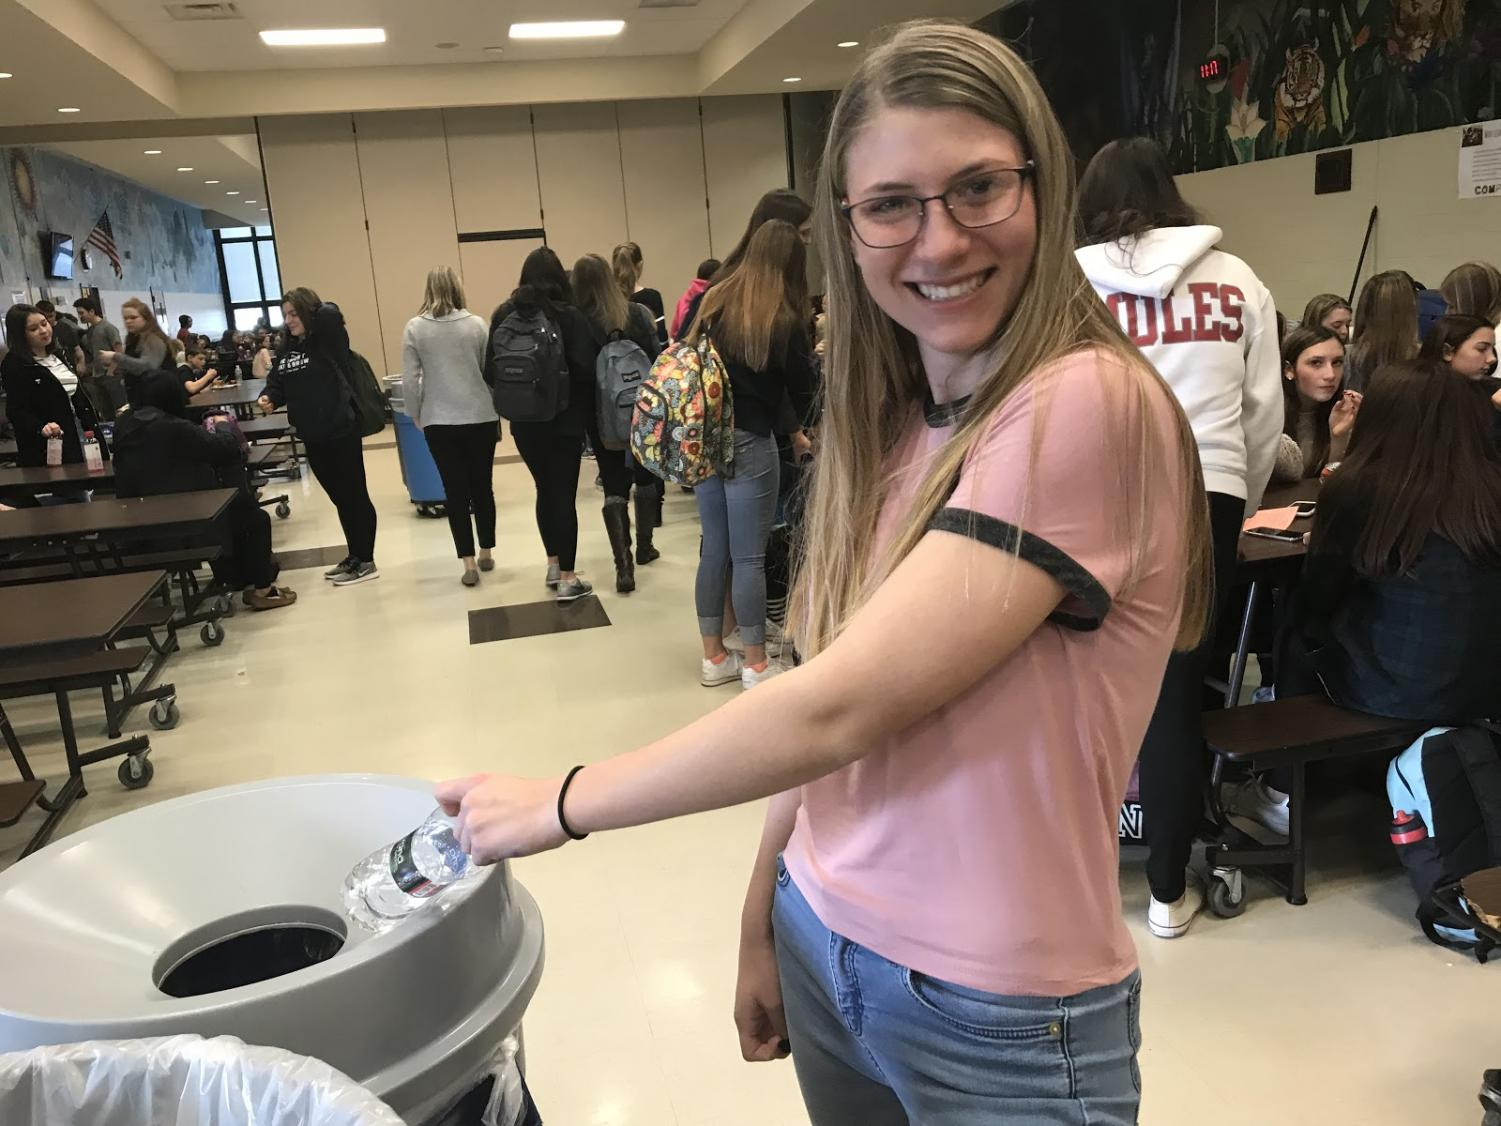 Lizzie Hoyt makes sure to recycle on a daily basis. She realized a problem with the recycling system in the high school, and decided to create change through her Gold Award.